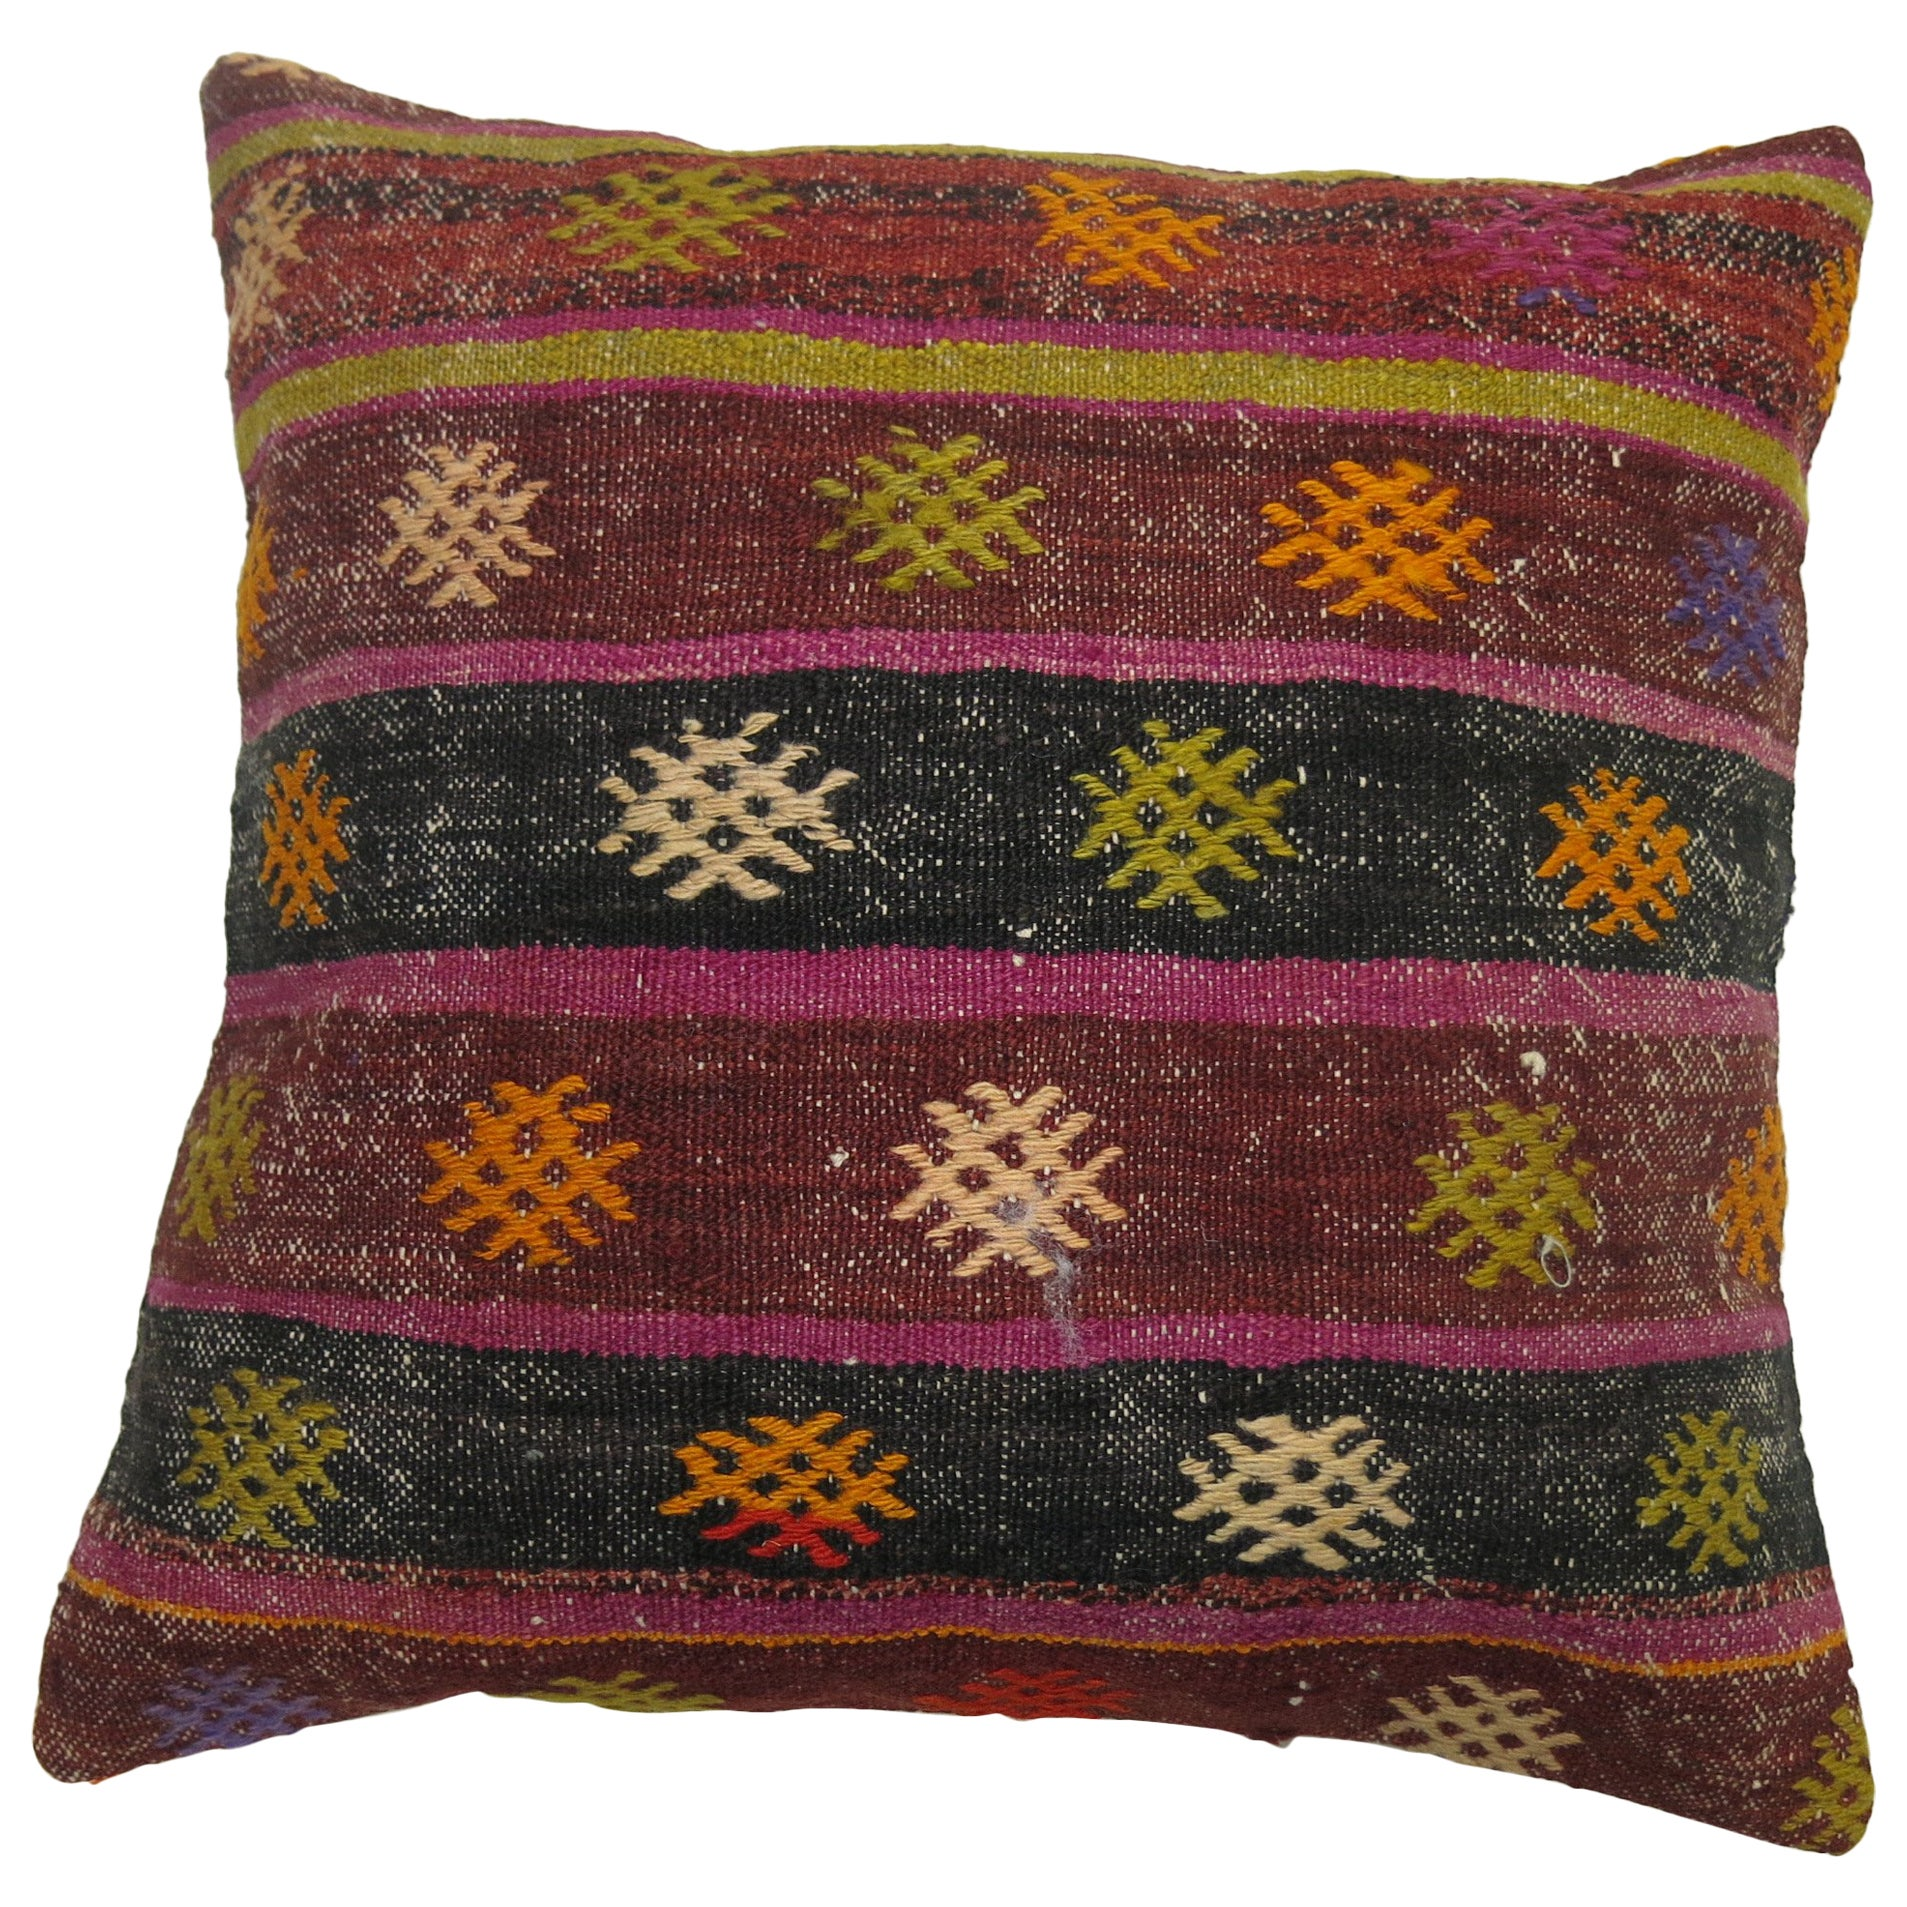 Striped Vintage Kilim Pillow